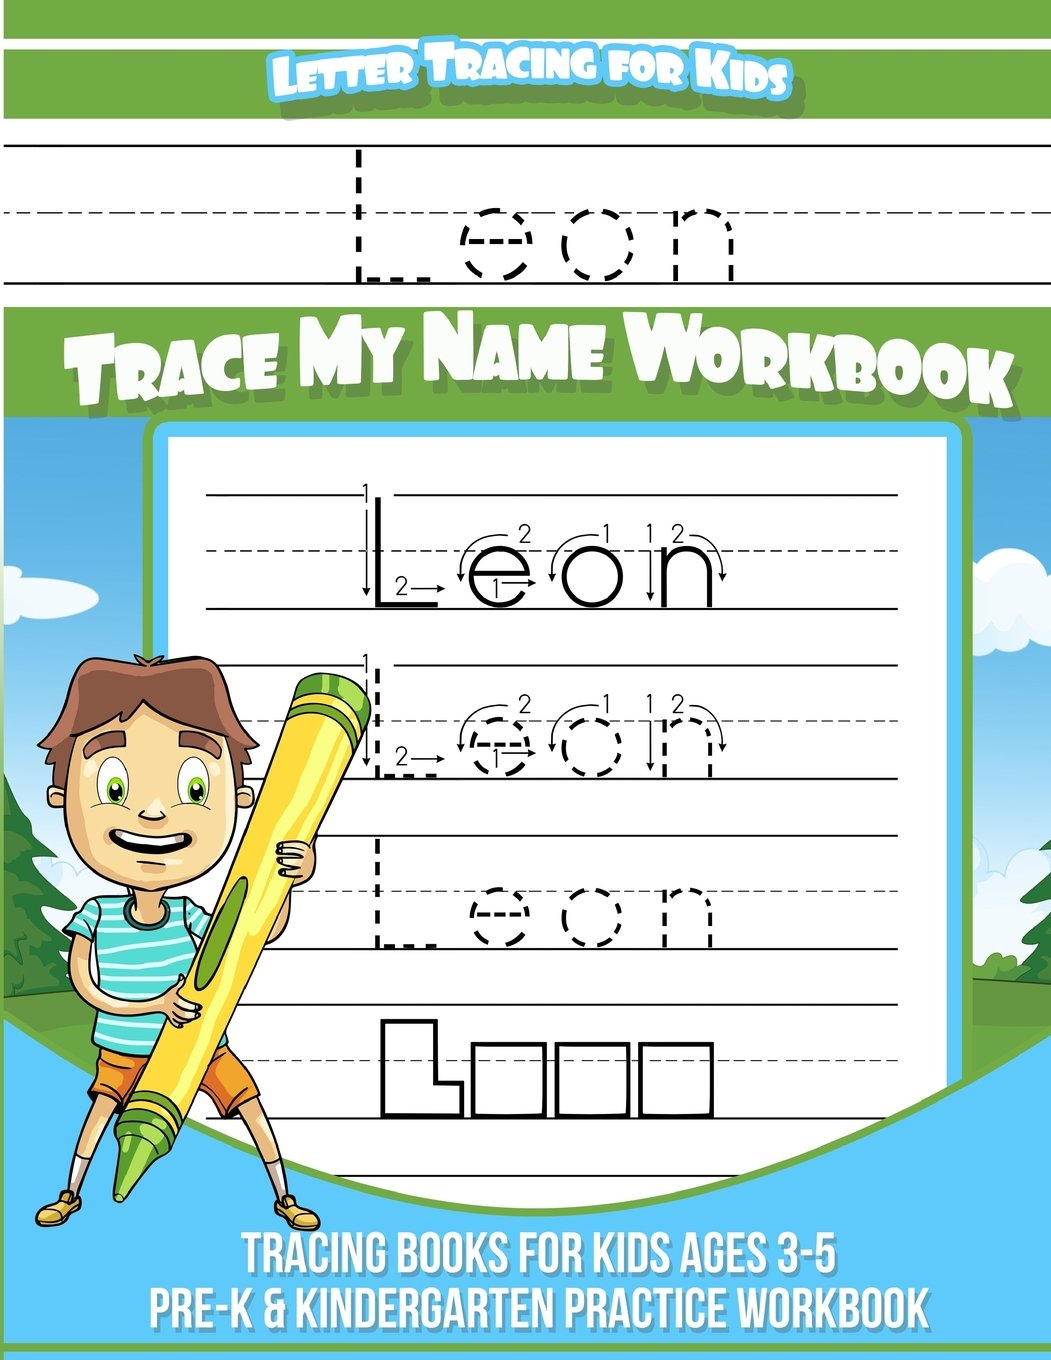 Read Online Leon Letter Tracing for Kids Trace my Name Workbook: Tracing Books for Kids ages 3-5 Pre-K & Kindergarten Practice Workbook PDF